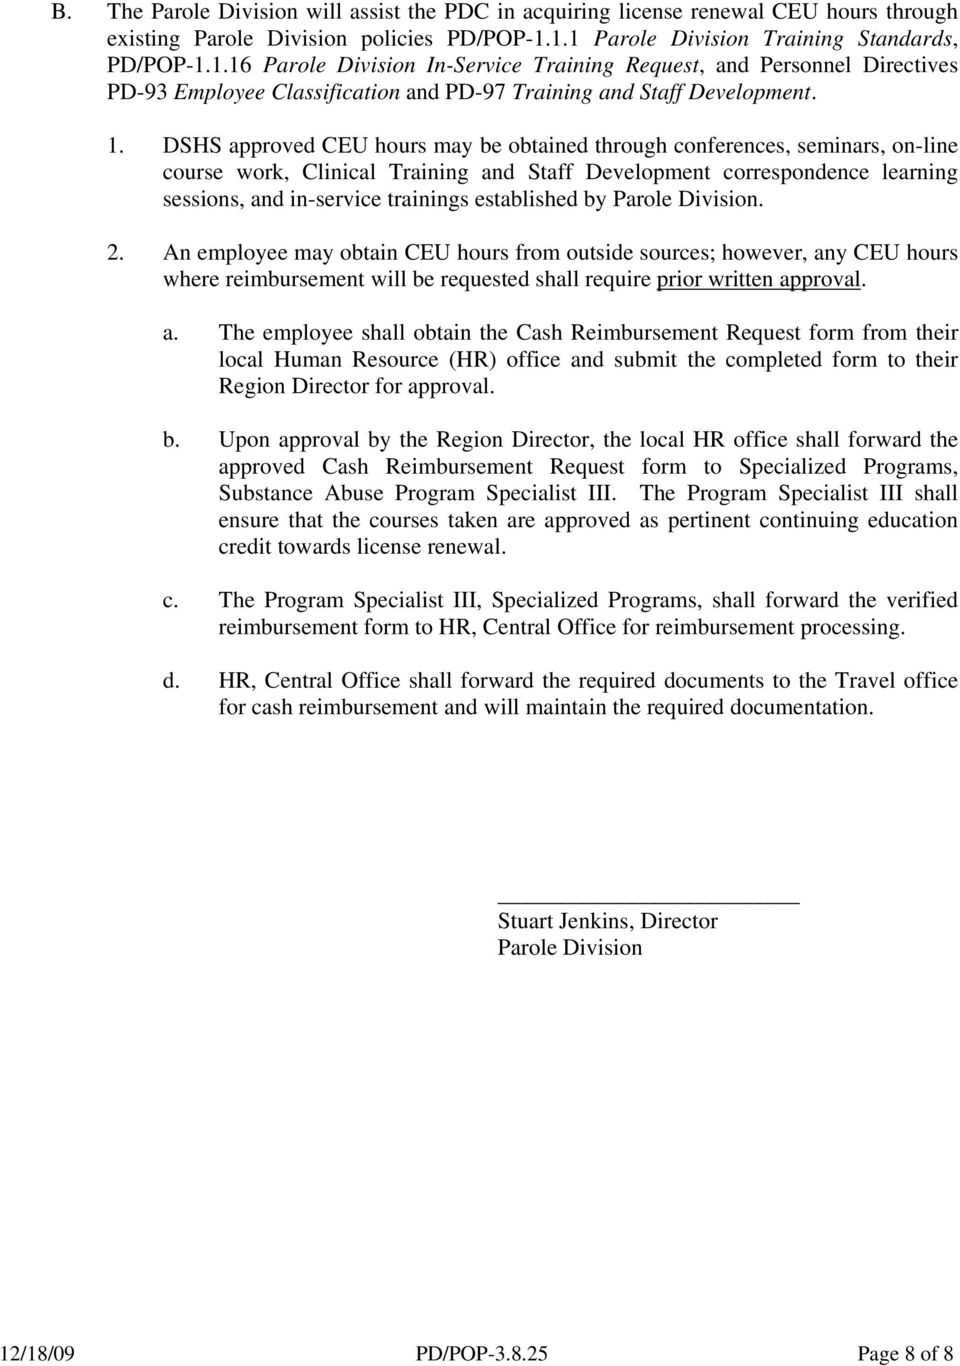 DSHS approved CEU hours may be obtained through conferences, seminars, on-line course work, Clinical Training and Staff Development correspondence learning sessions, and in-service trainings